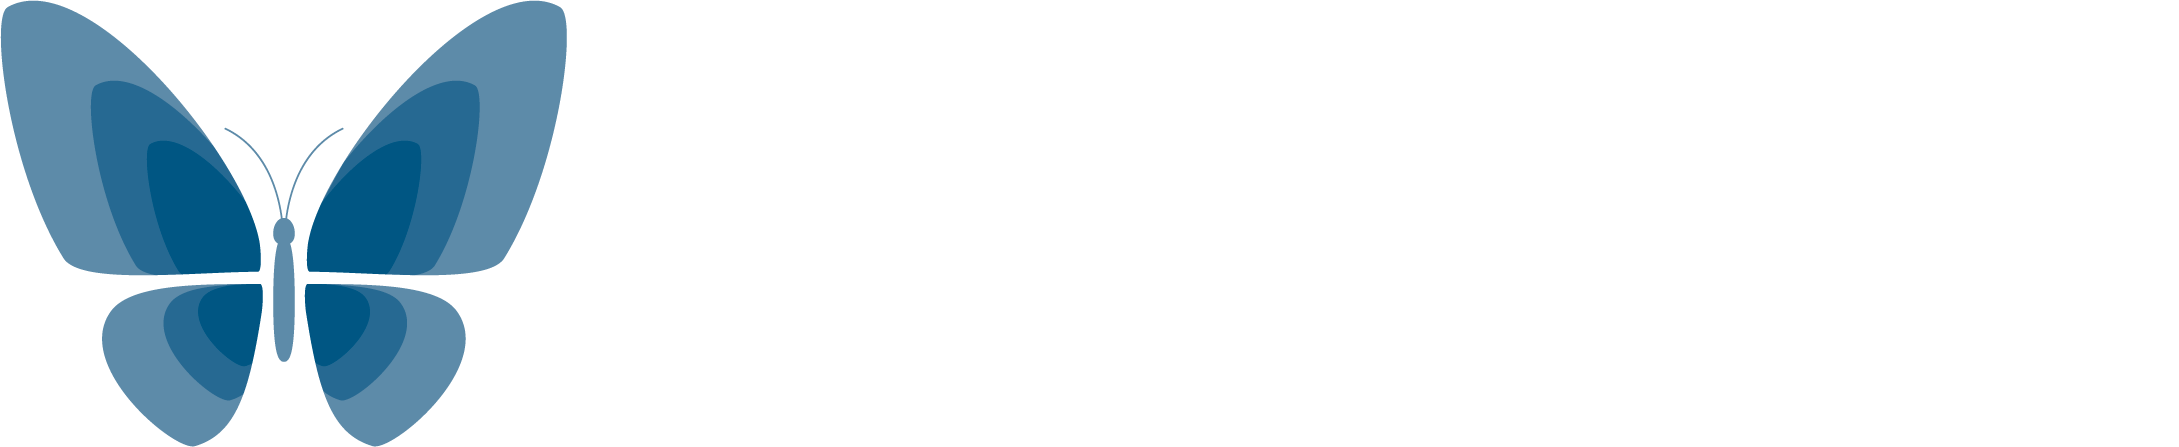 epiGenesys - a University of Sheffield company